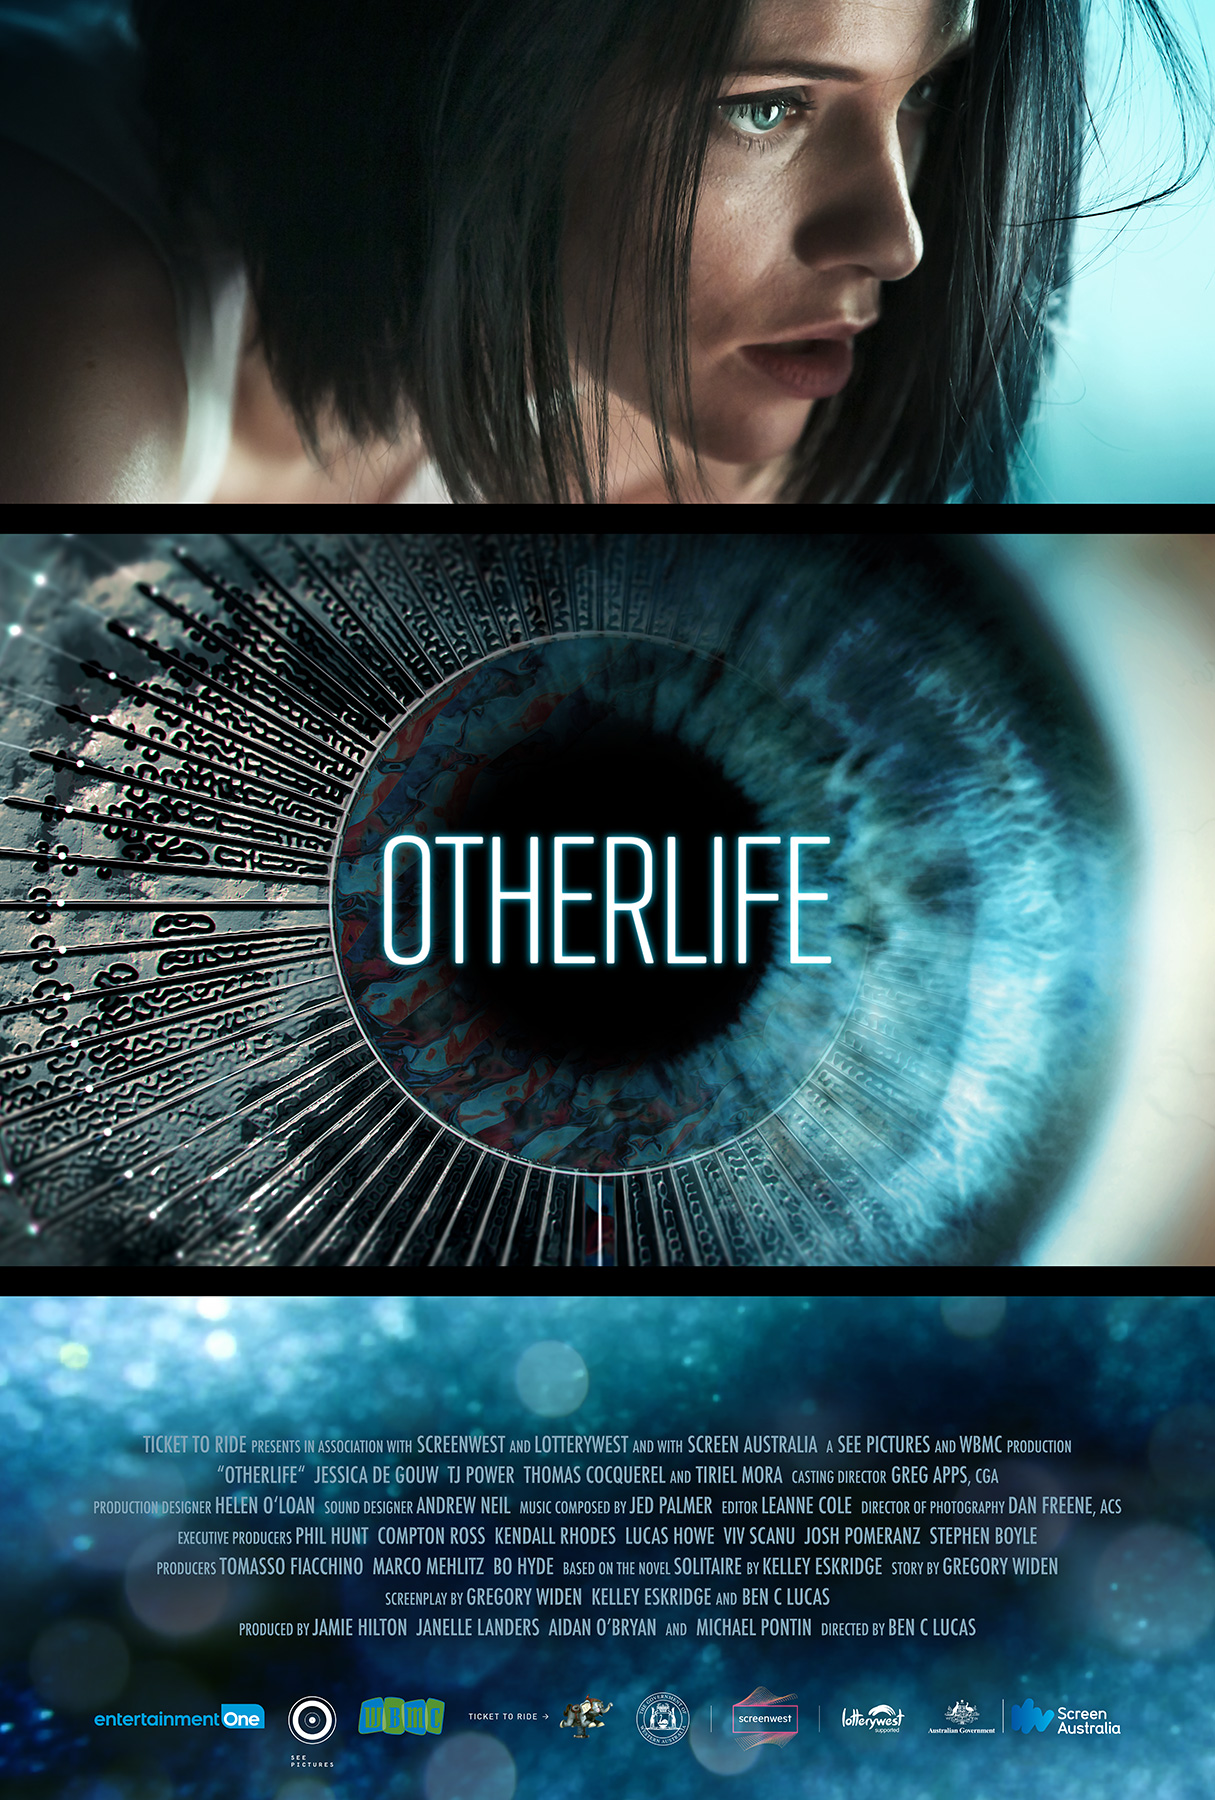 OtherLife_Poster-SMALL_@_72dpi_RGB_8Bit.jpg